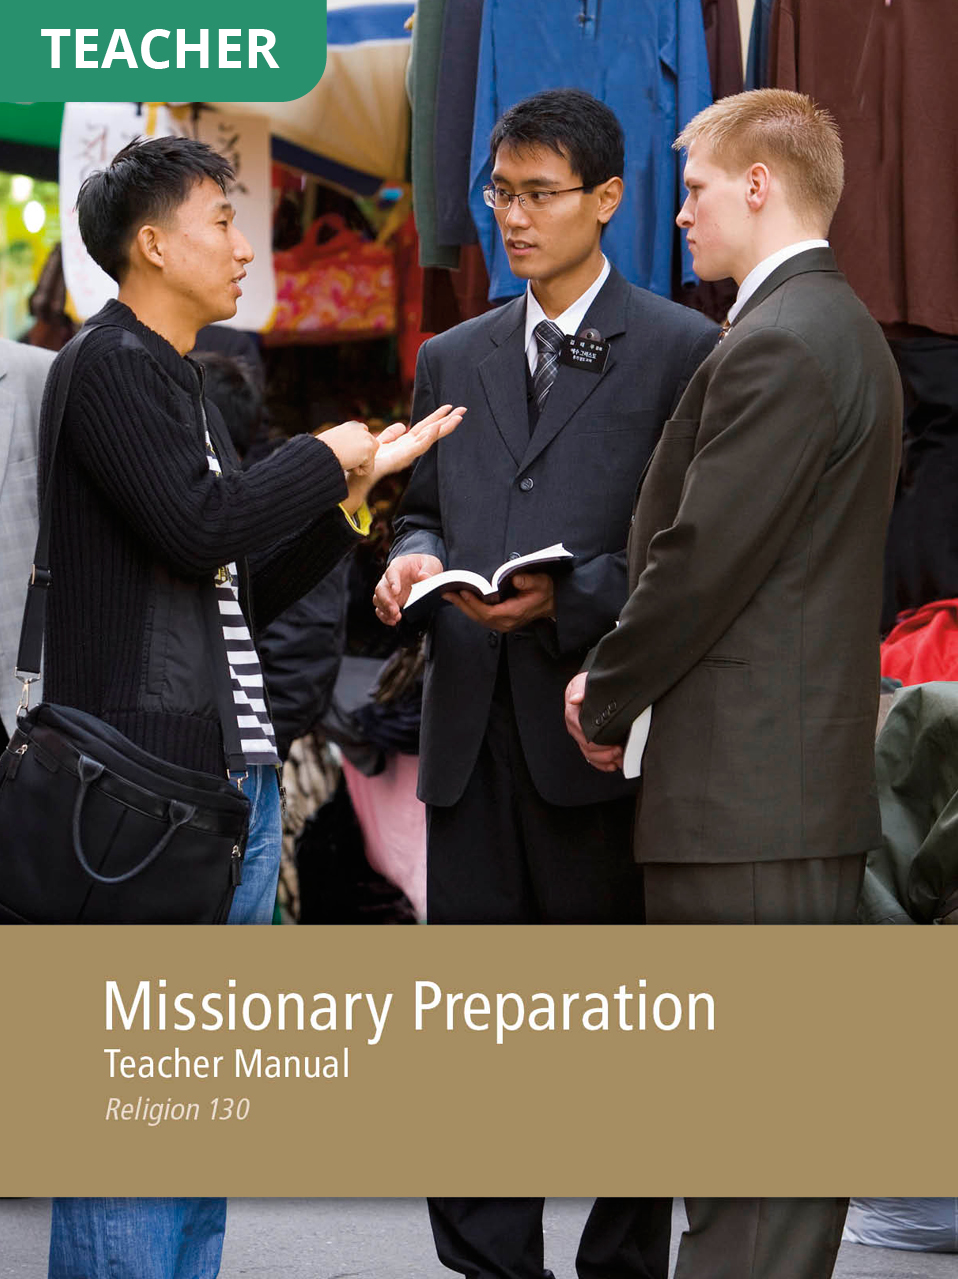 Missionary Preparation Teacher Manual (Rel 130)